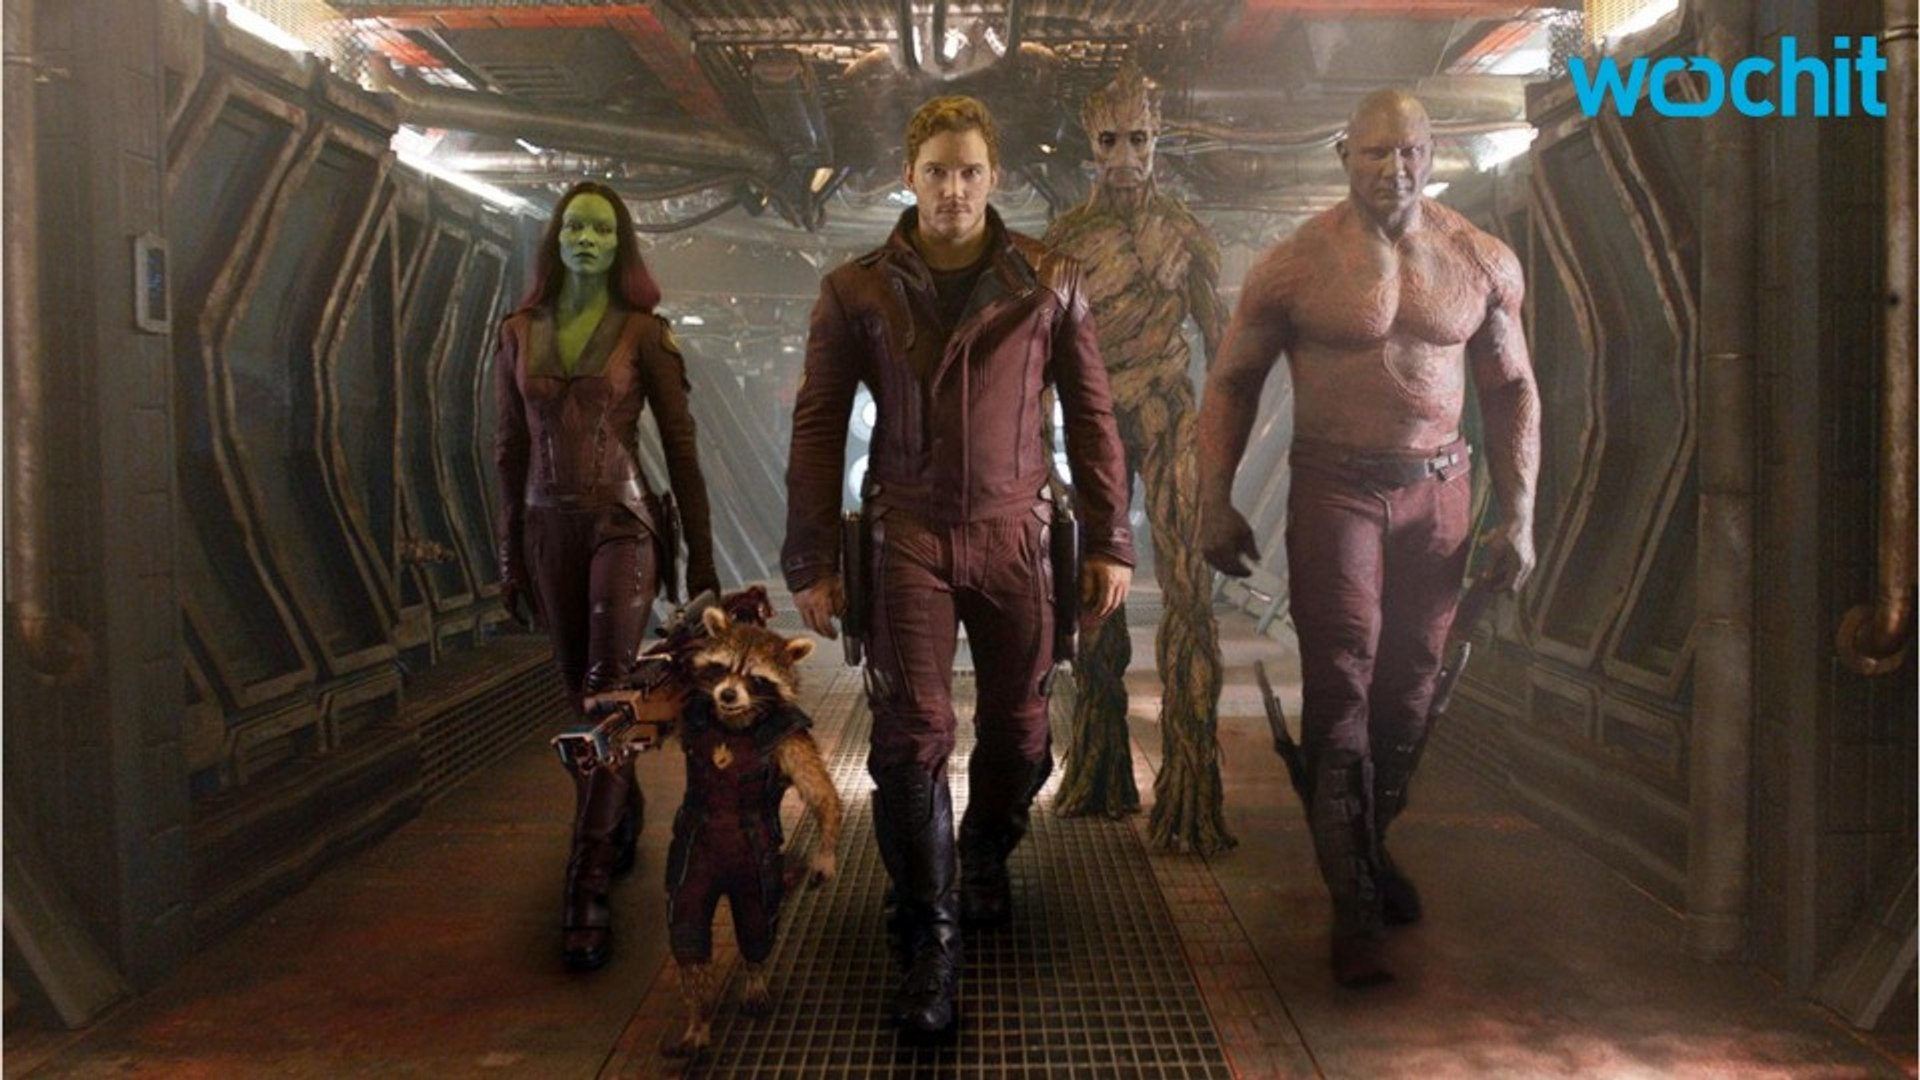 Guardians Of The Galaxy Vol. 2 Merchandise Will Focus On Groot